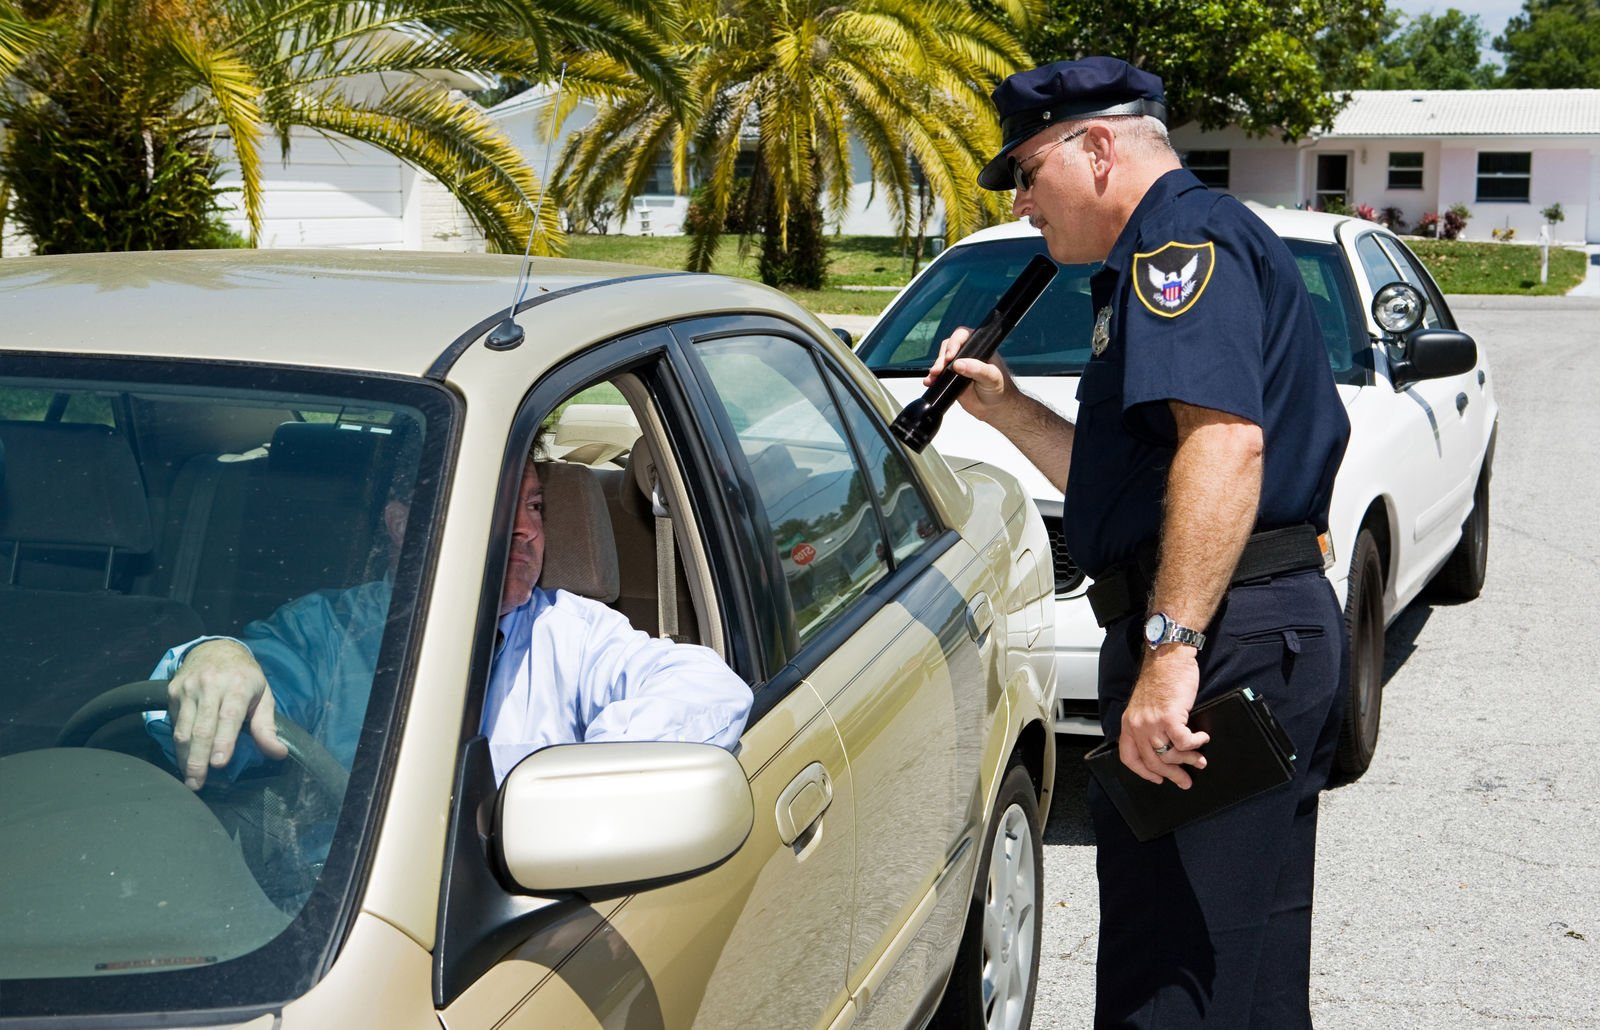 Who to sue in car accident - insurance company or driver?